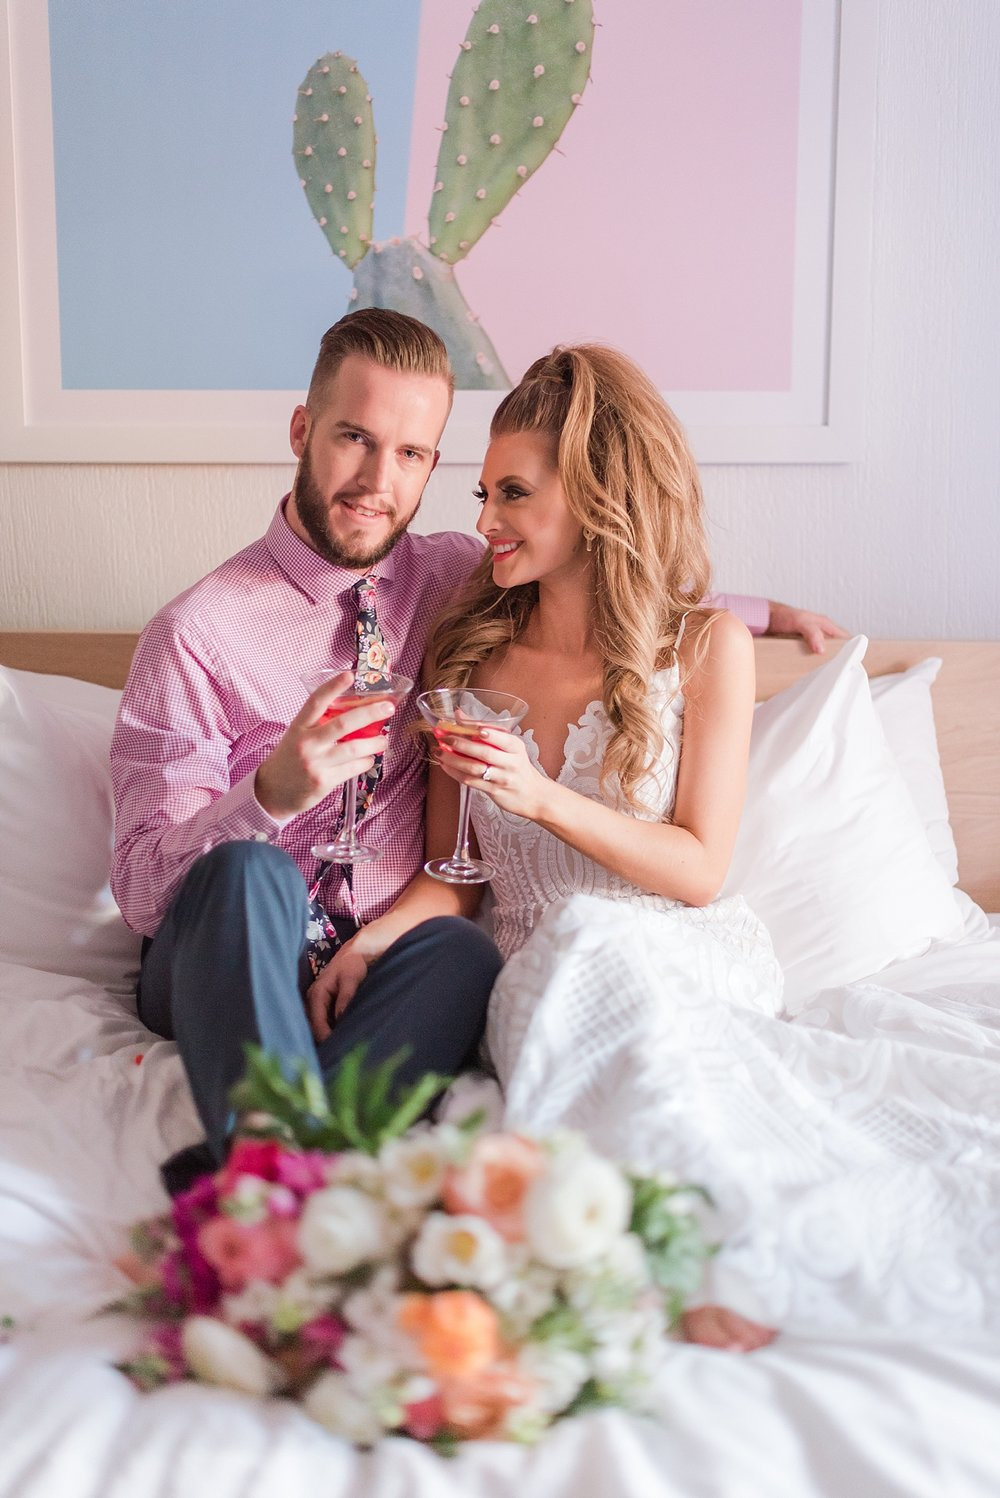 Gorgeous bride Natalie Meyer wearing a dress by Bella Lily Bridal, with her groom Zach Meyer at The Saguaro Scottsdale's Honeymoon Suite. Hair and makeup was done by Makiaj Beauty. Groom's tux was provided by Magro Clothing.